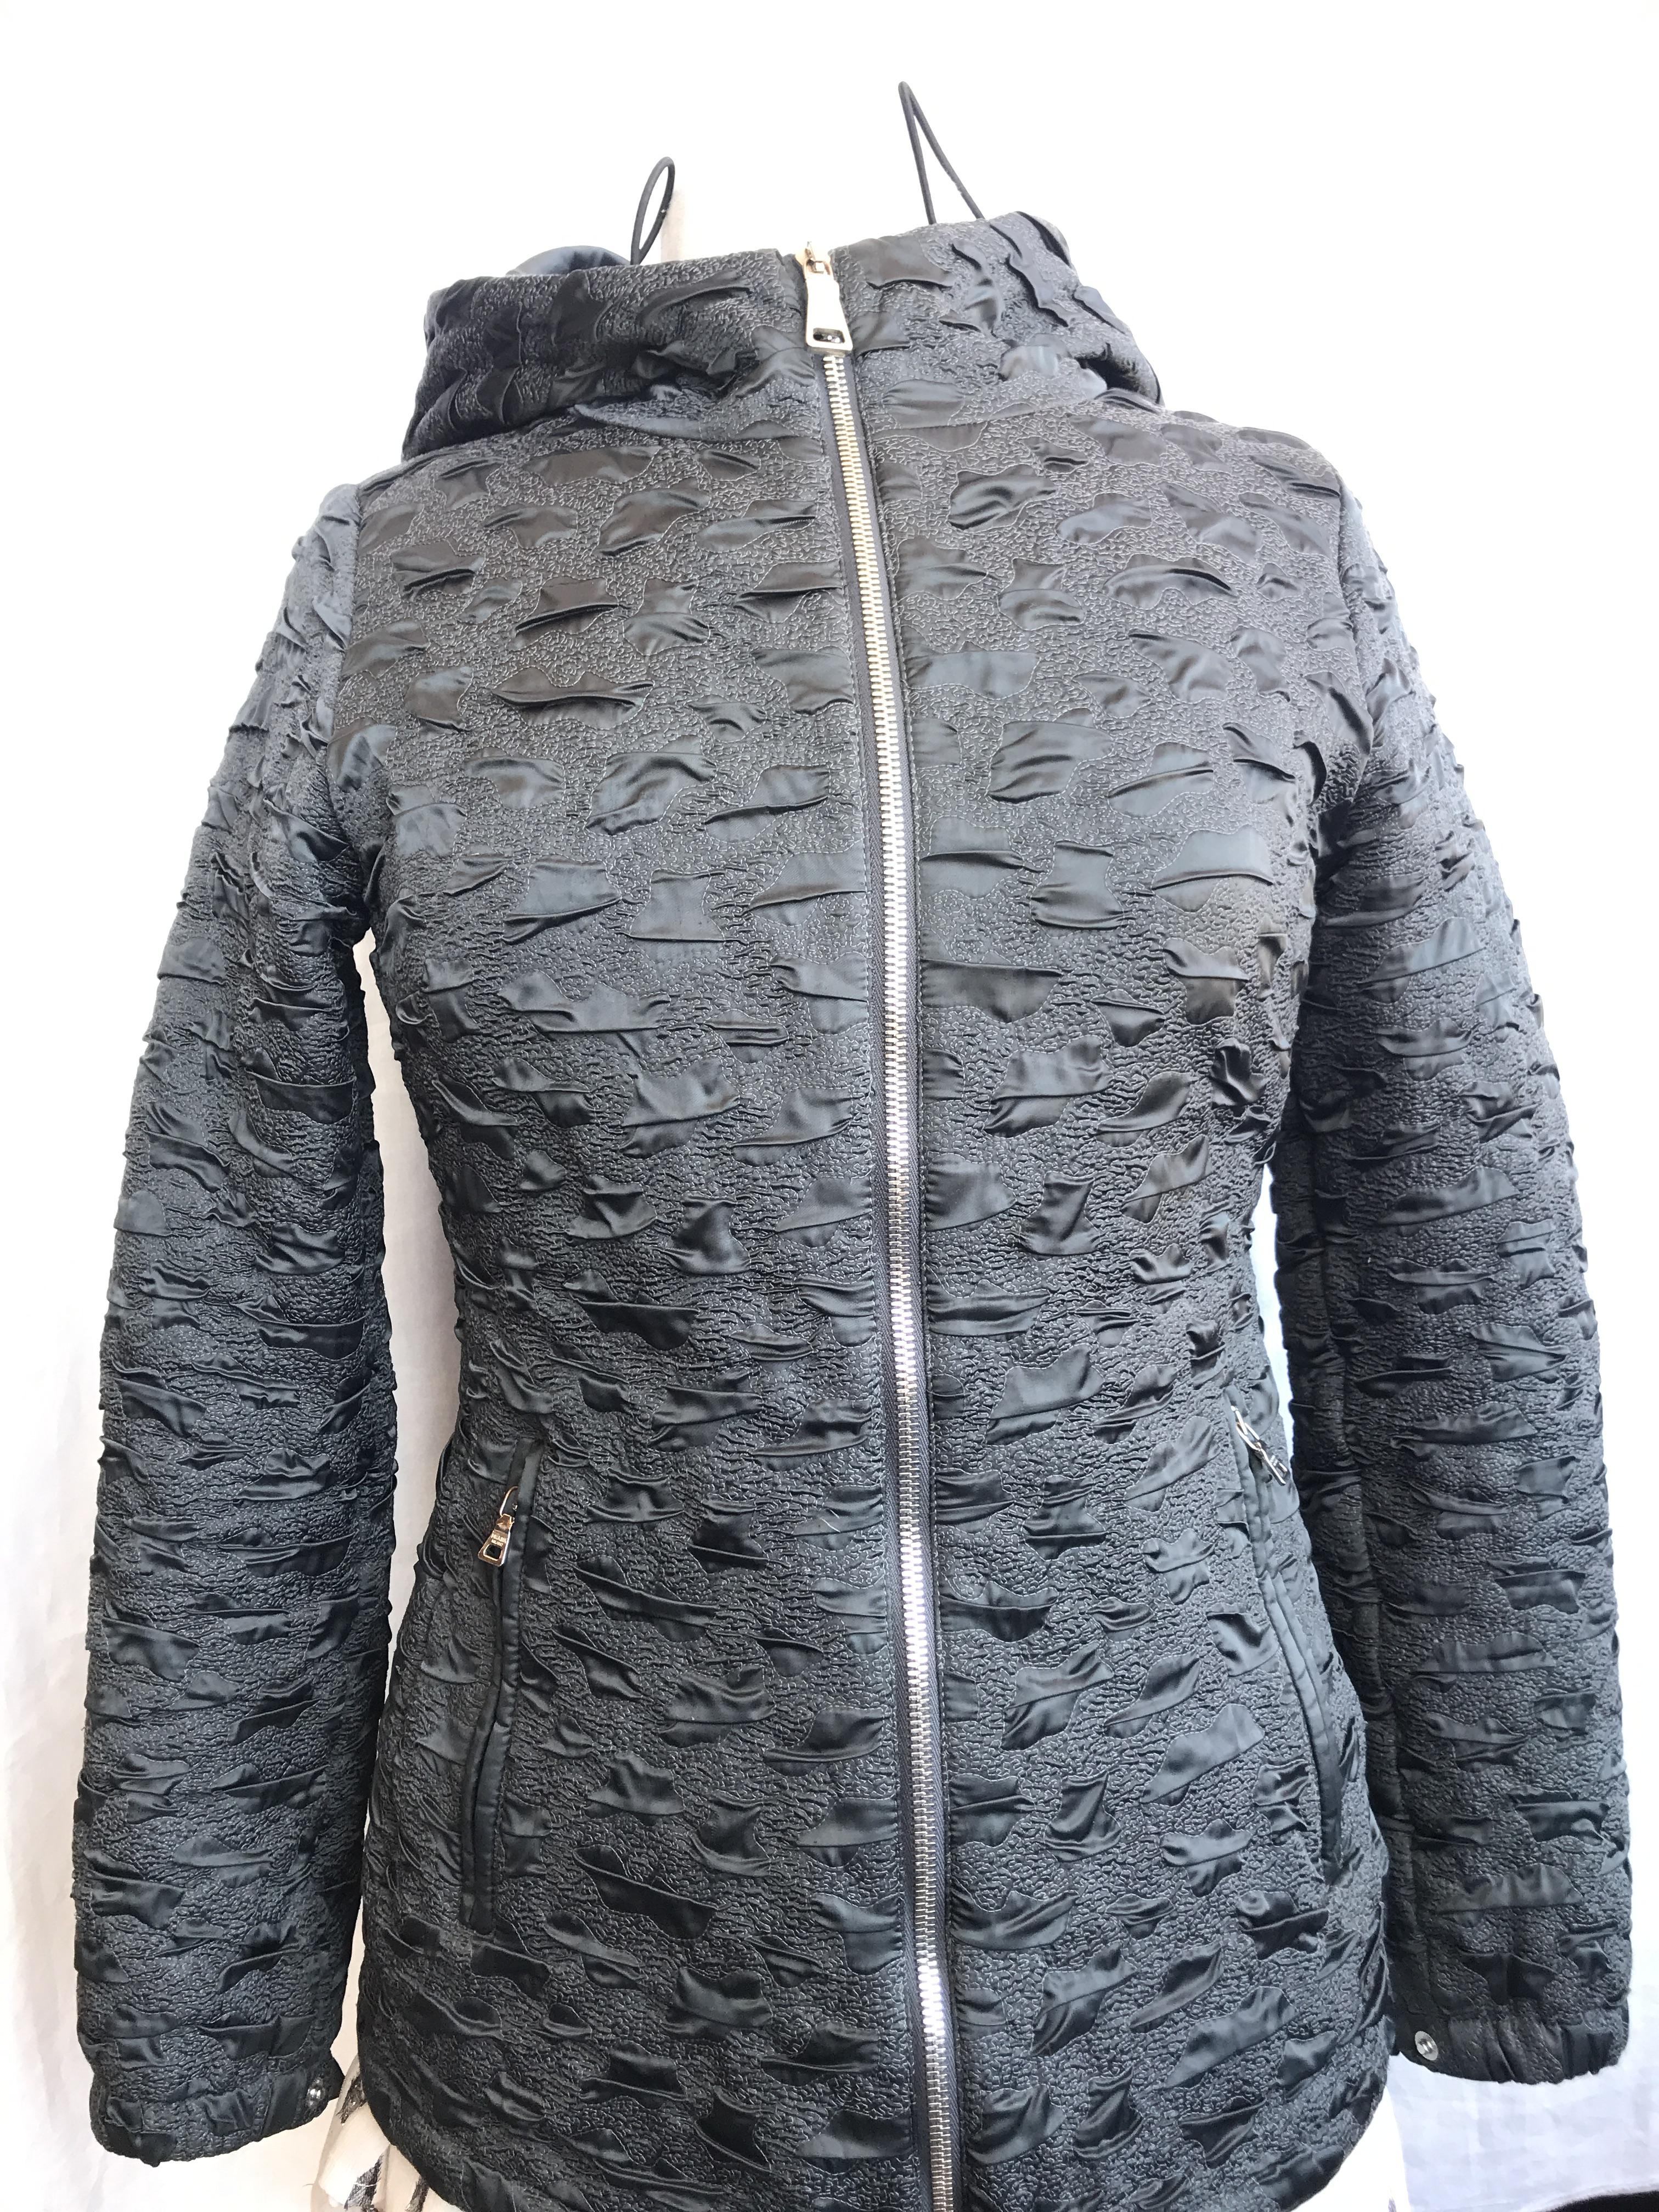 Prada textured Jackets, Coats, Outerwear Price: $389.99